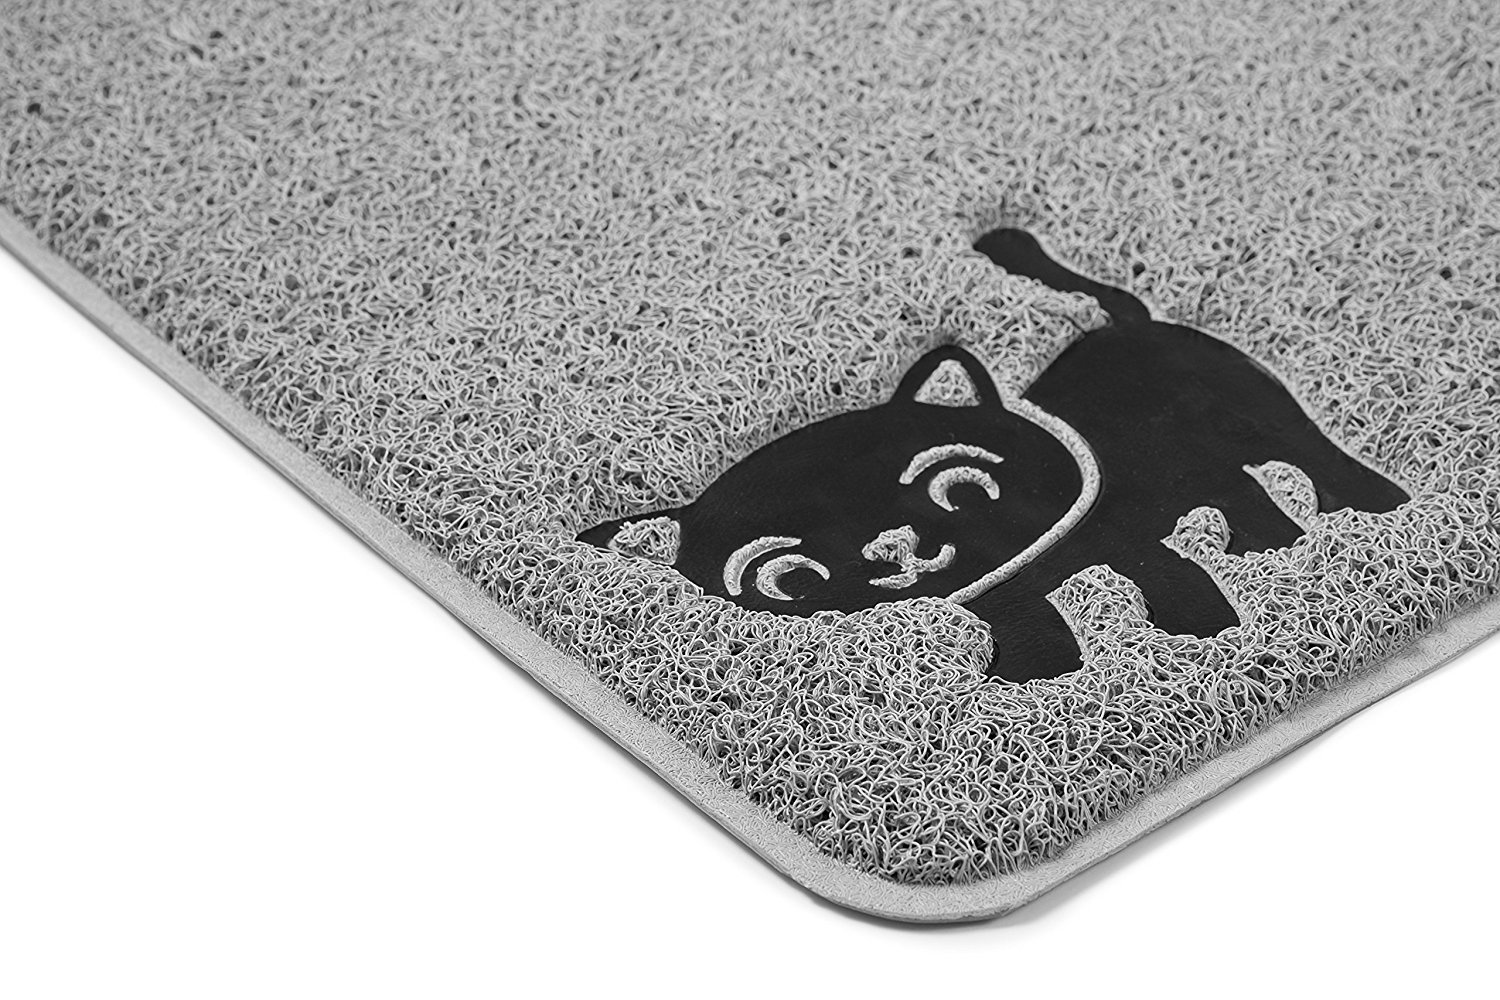 """Cat Litter Mat By Smiling Paws Pets, BPA Free, XL Size 35x23.5"""", Non-Slip - Tear & Scratch Proof, Easy to Clean Kitty Litter Catcher with Scatter Control (Extra Large Gray) XL Size 35x23.5"""""""